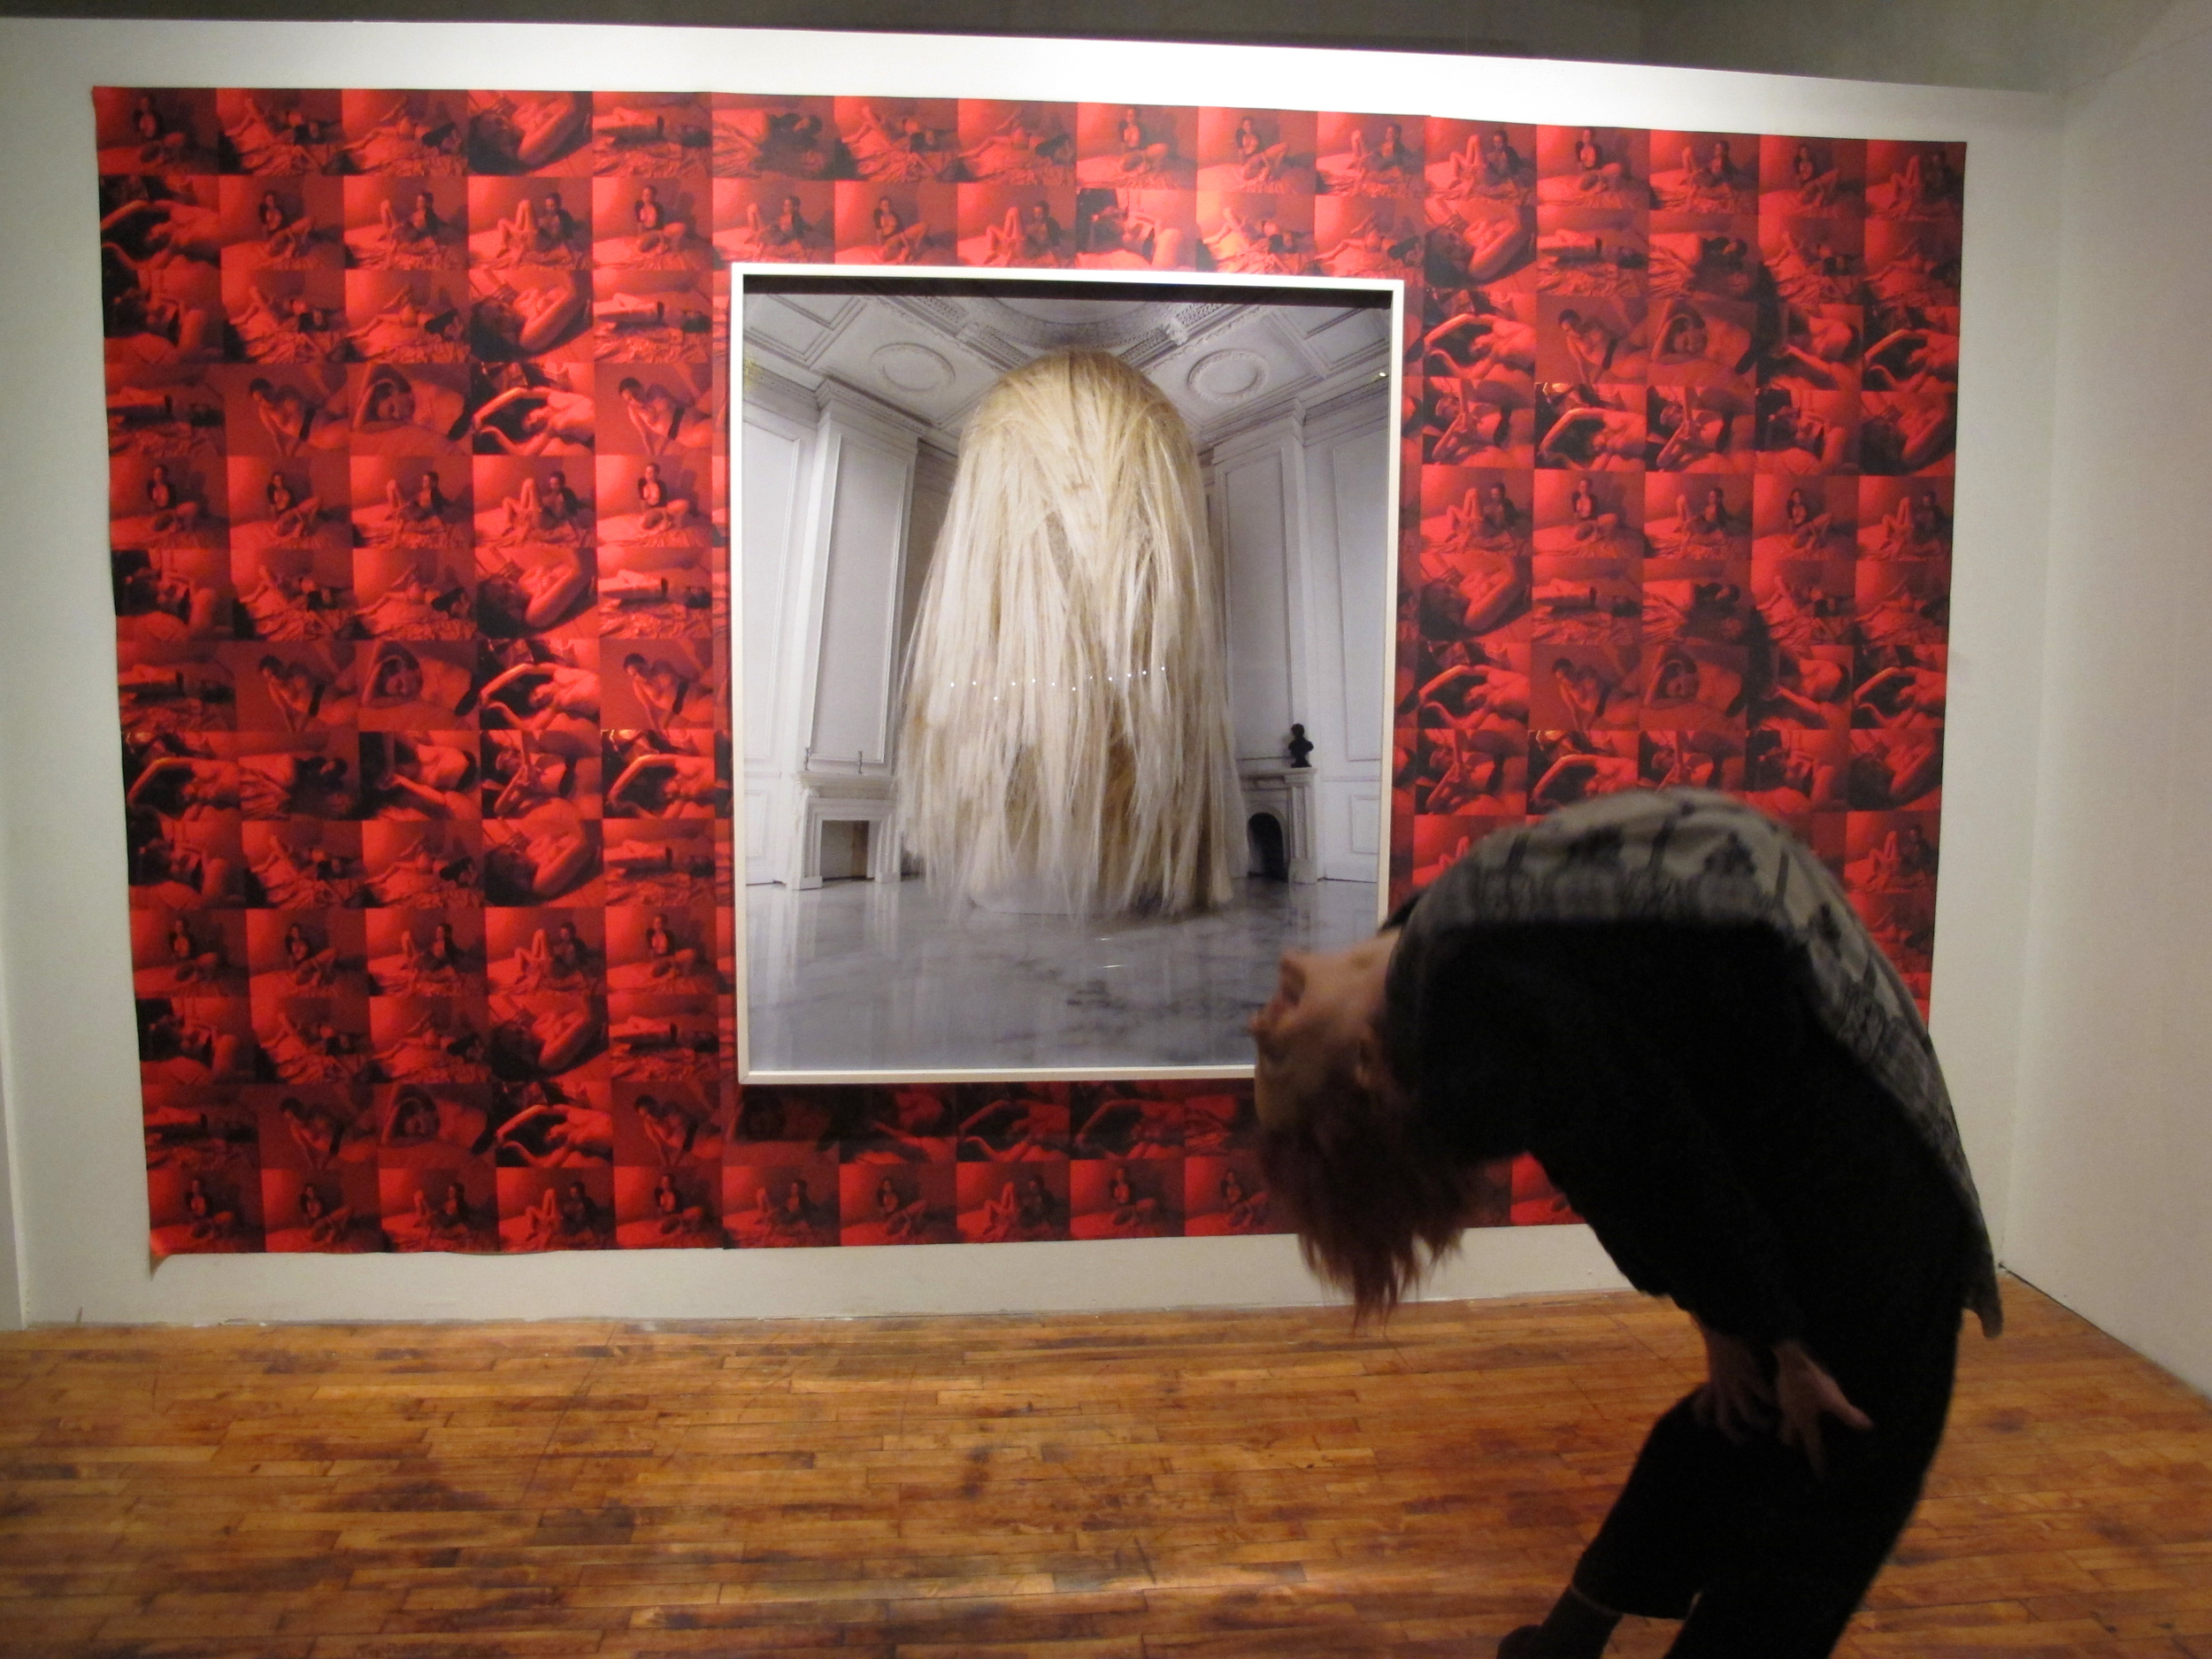 Holiday Show December 2012, Collaboration of Rafael Fuchs (red wallpaper) and Petros Chrisostomou (framed work)